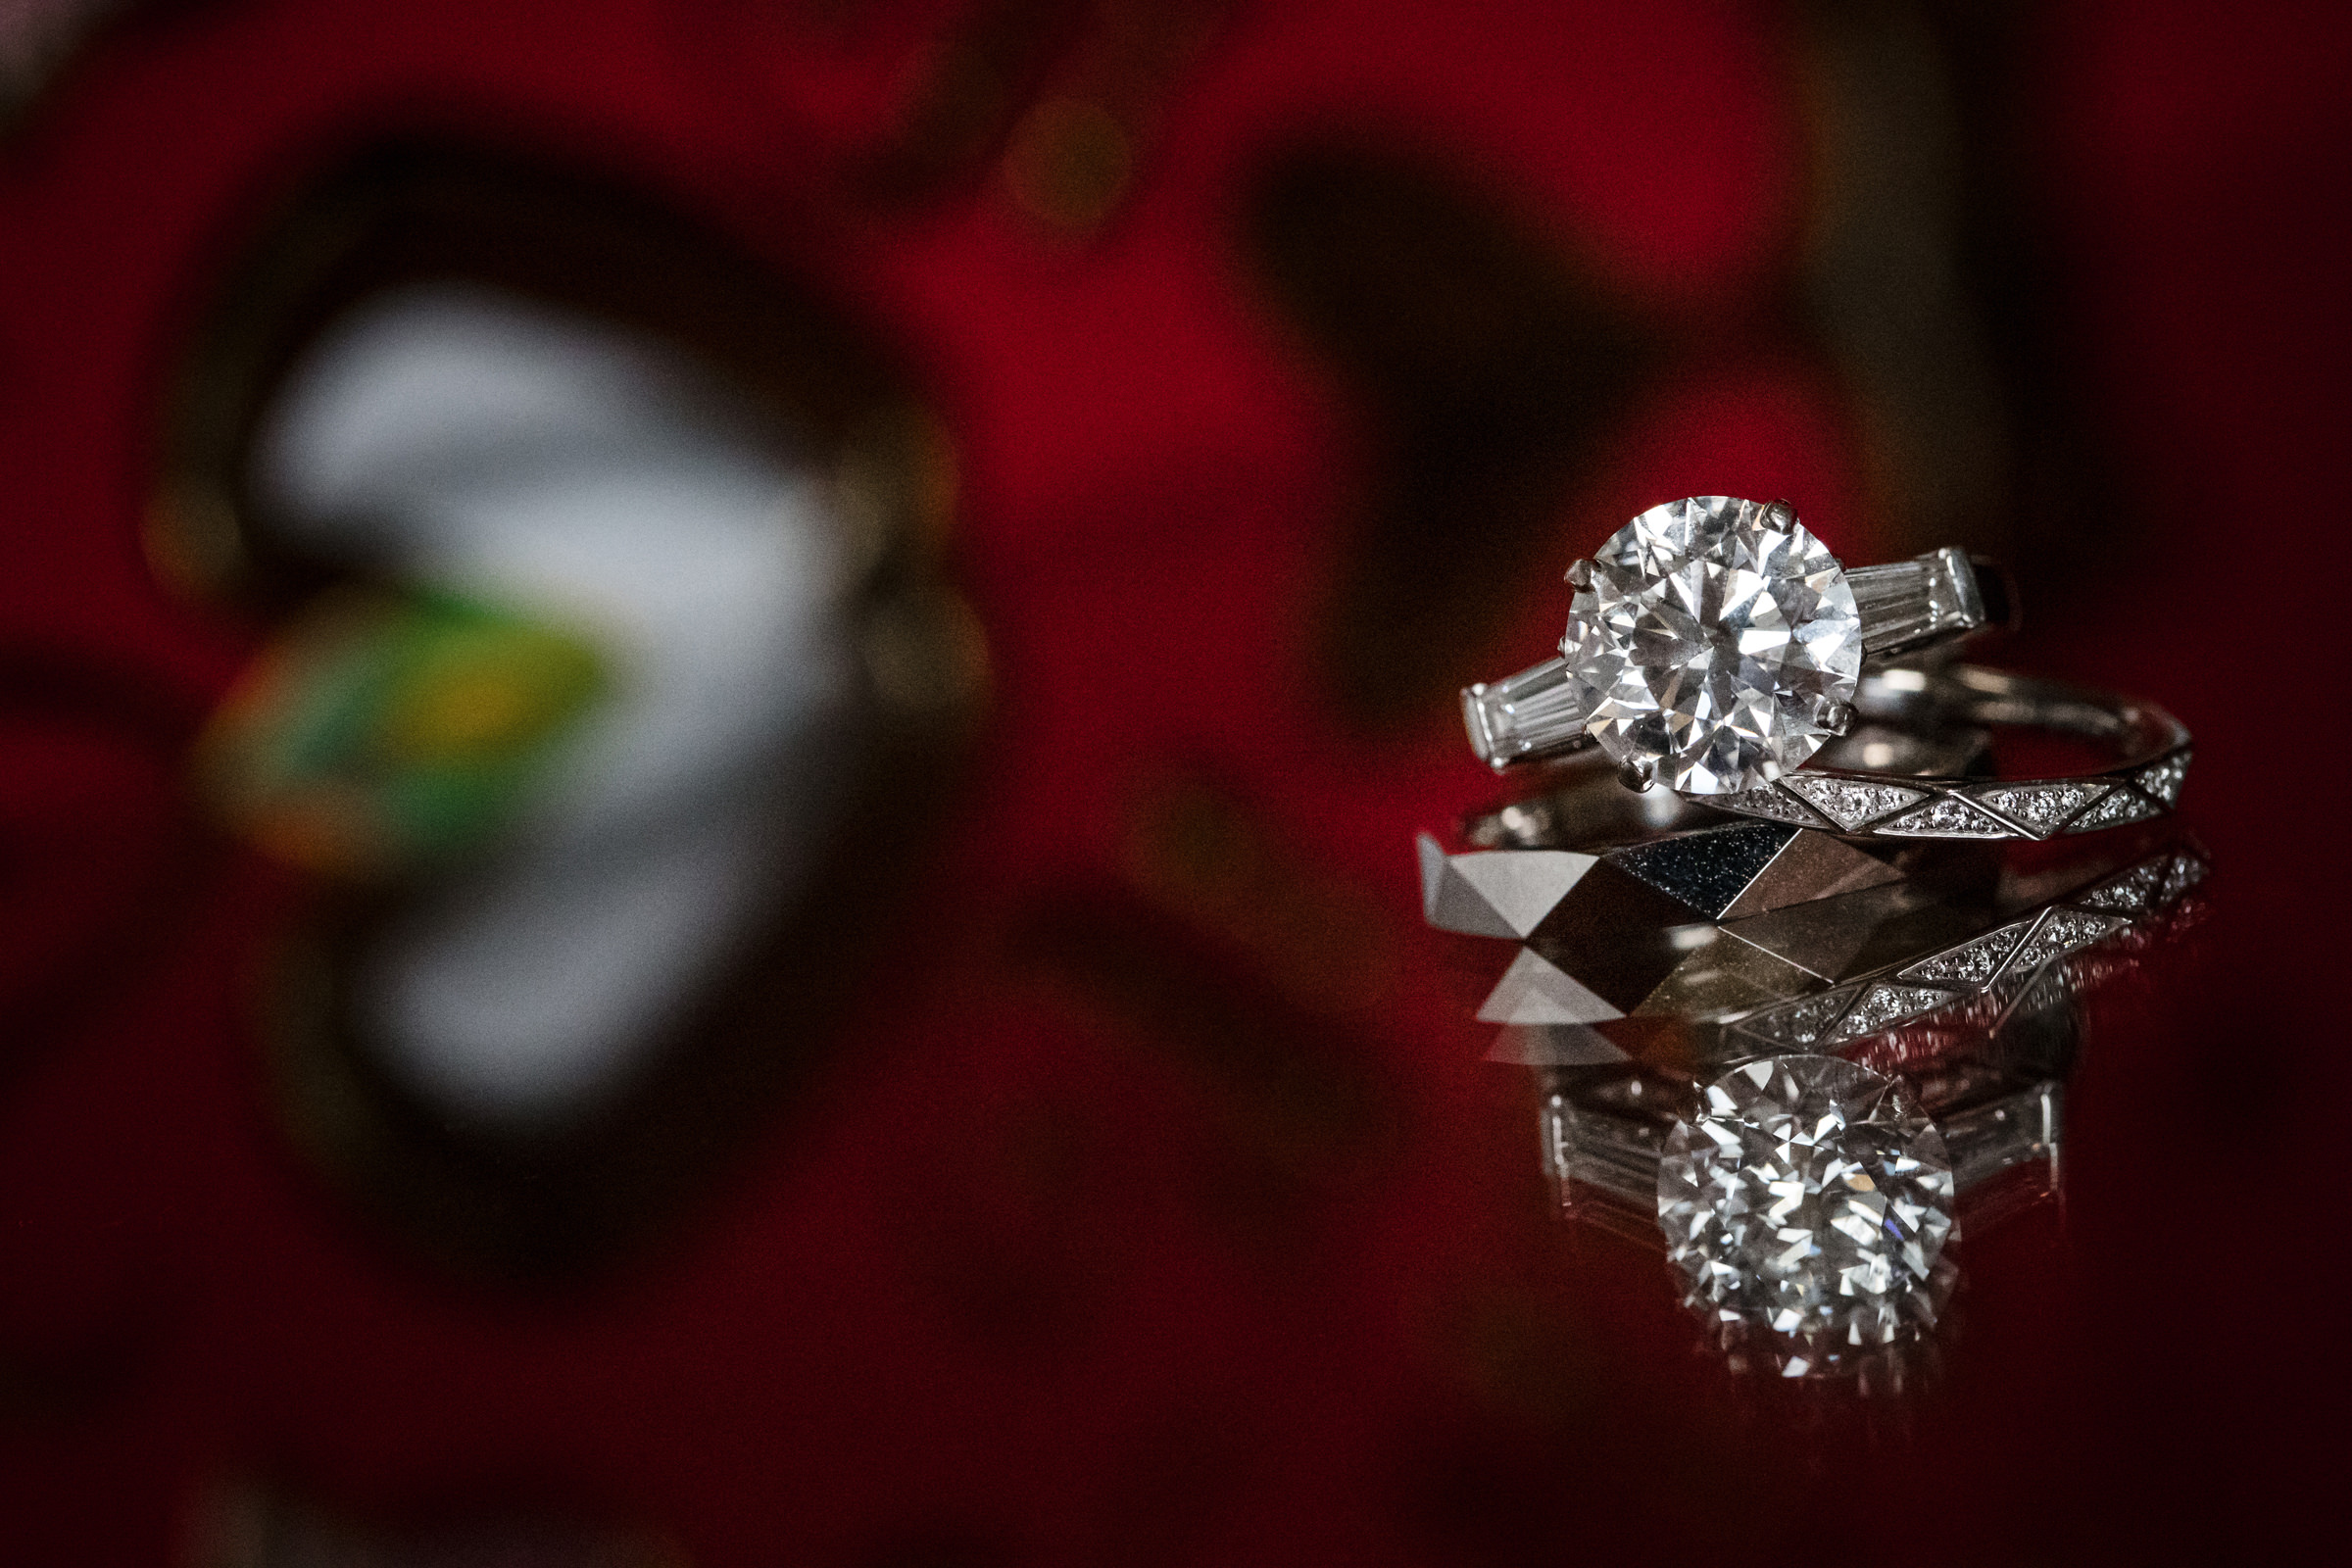 Diamond RIng Detail - Photo by Susan Stripling Photography